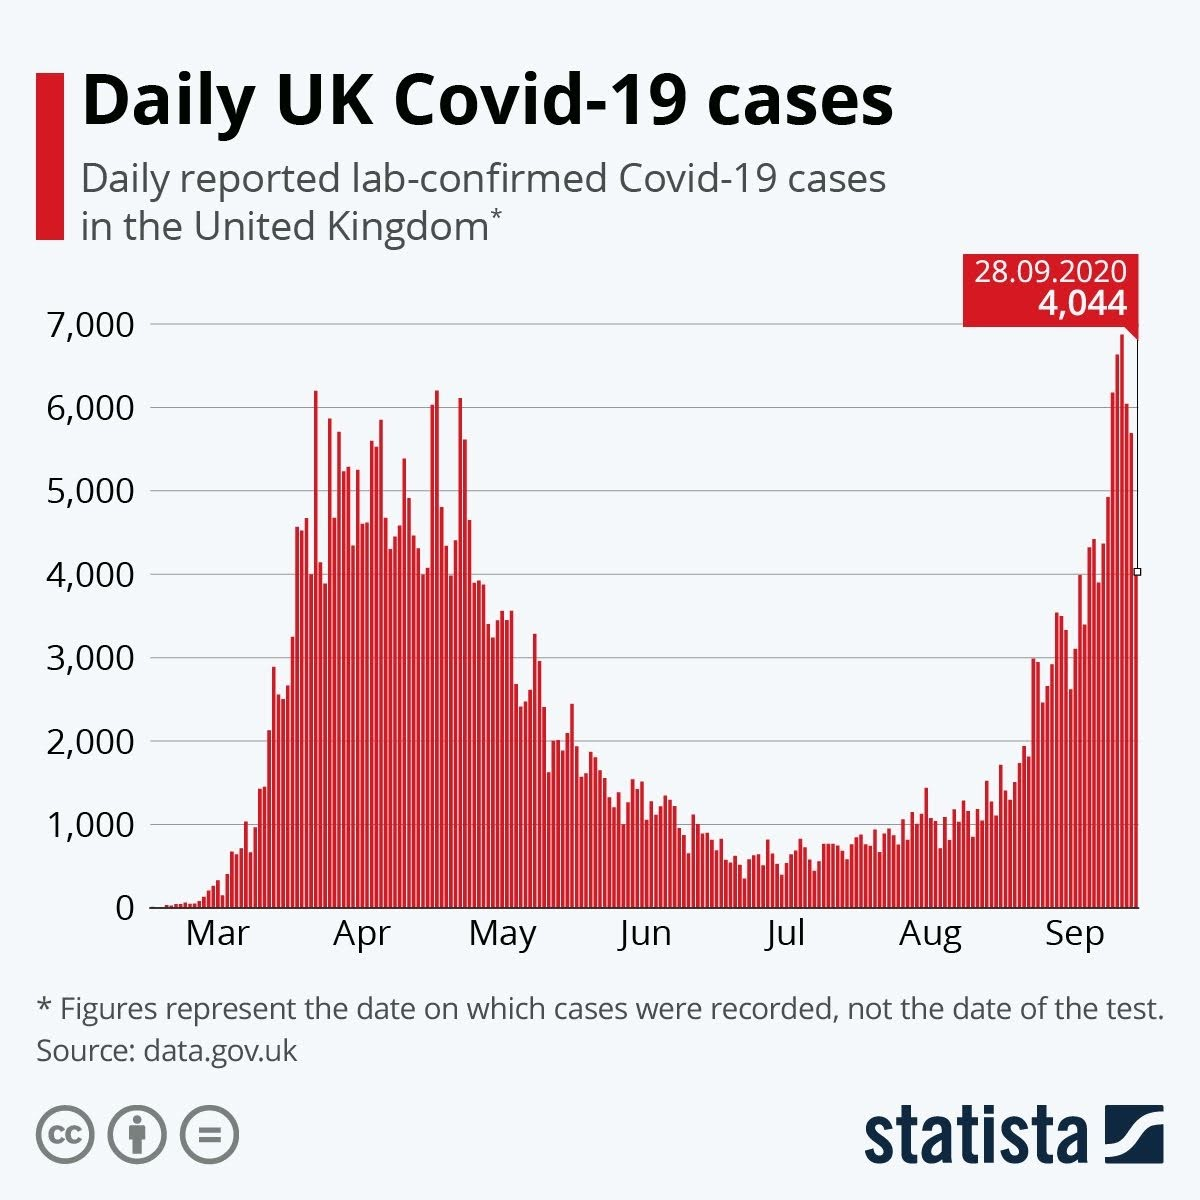 daily-uk-covid-19-cases-infographic